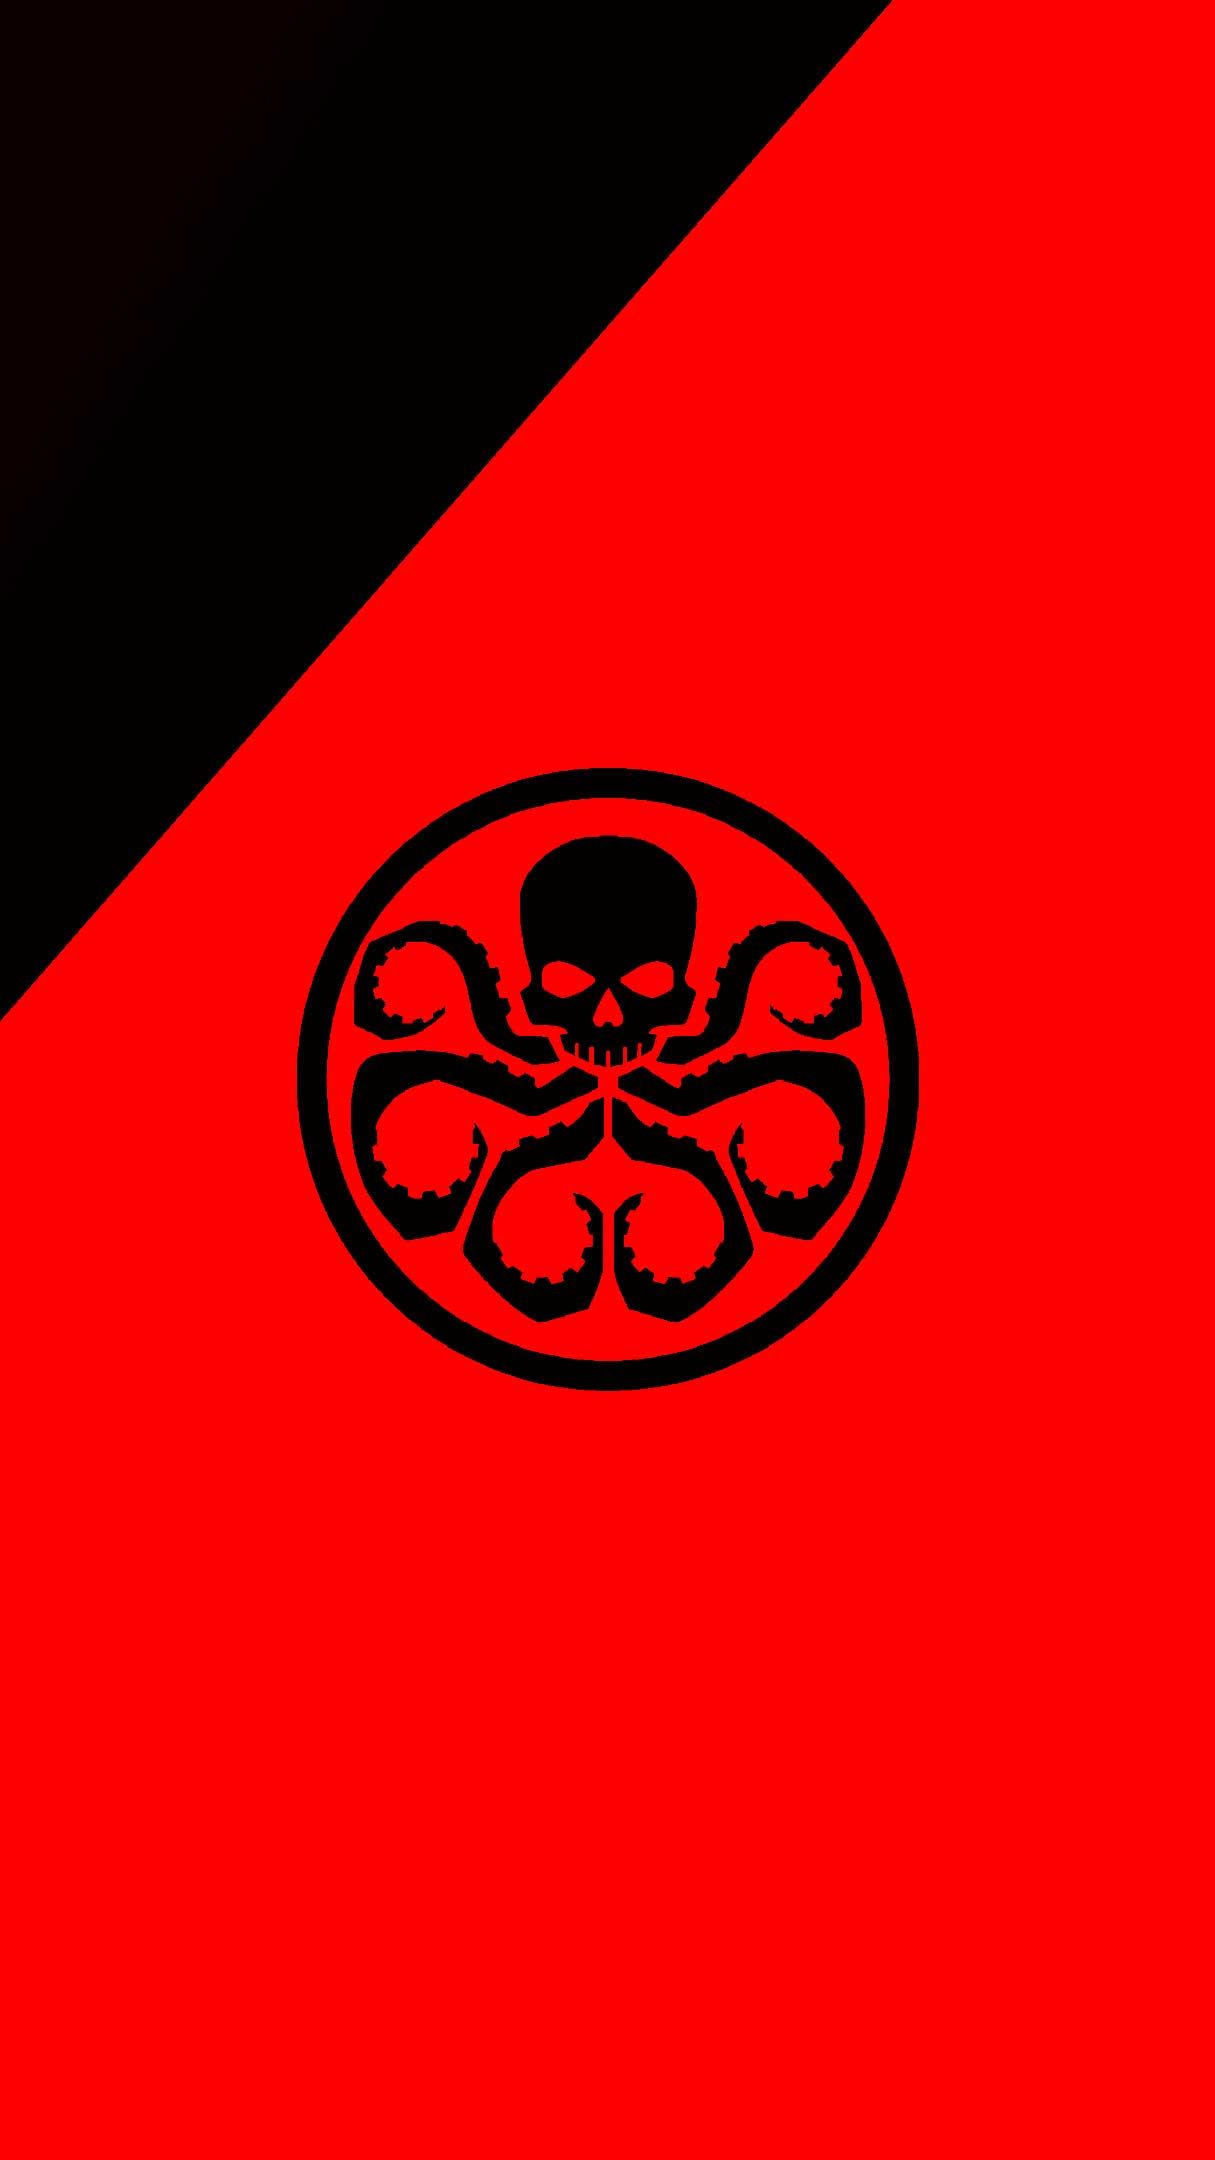 Hydra Logo Red K Iphone Wallpapers Hd In 2020 Iphone Wallpaper